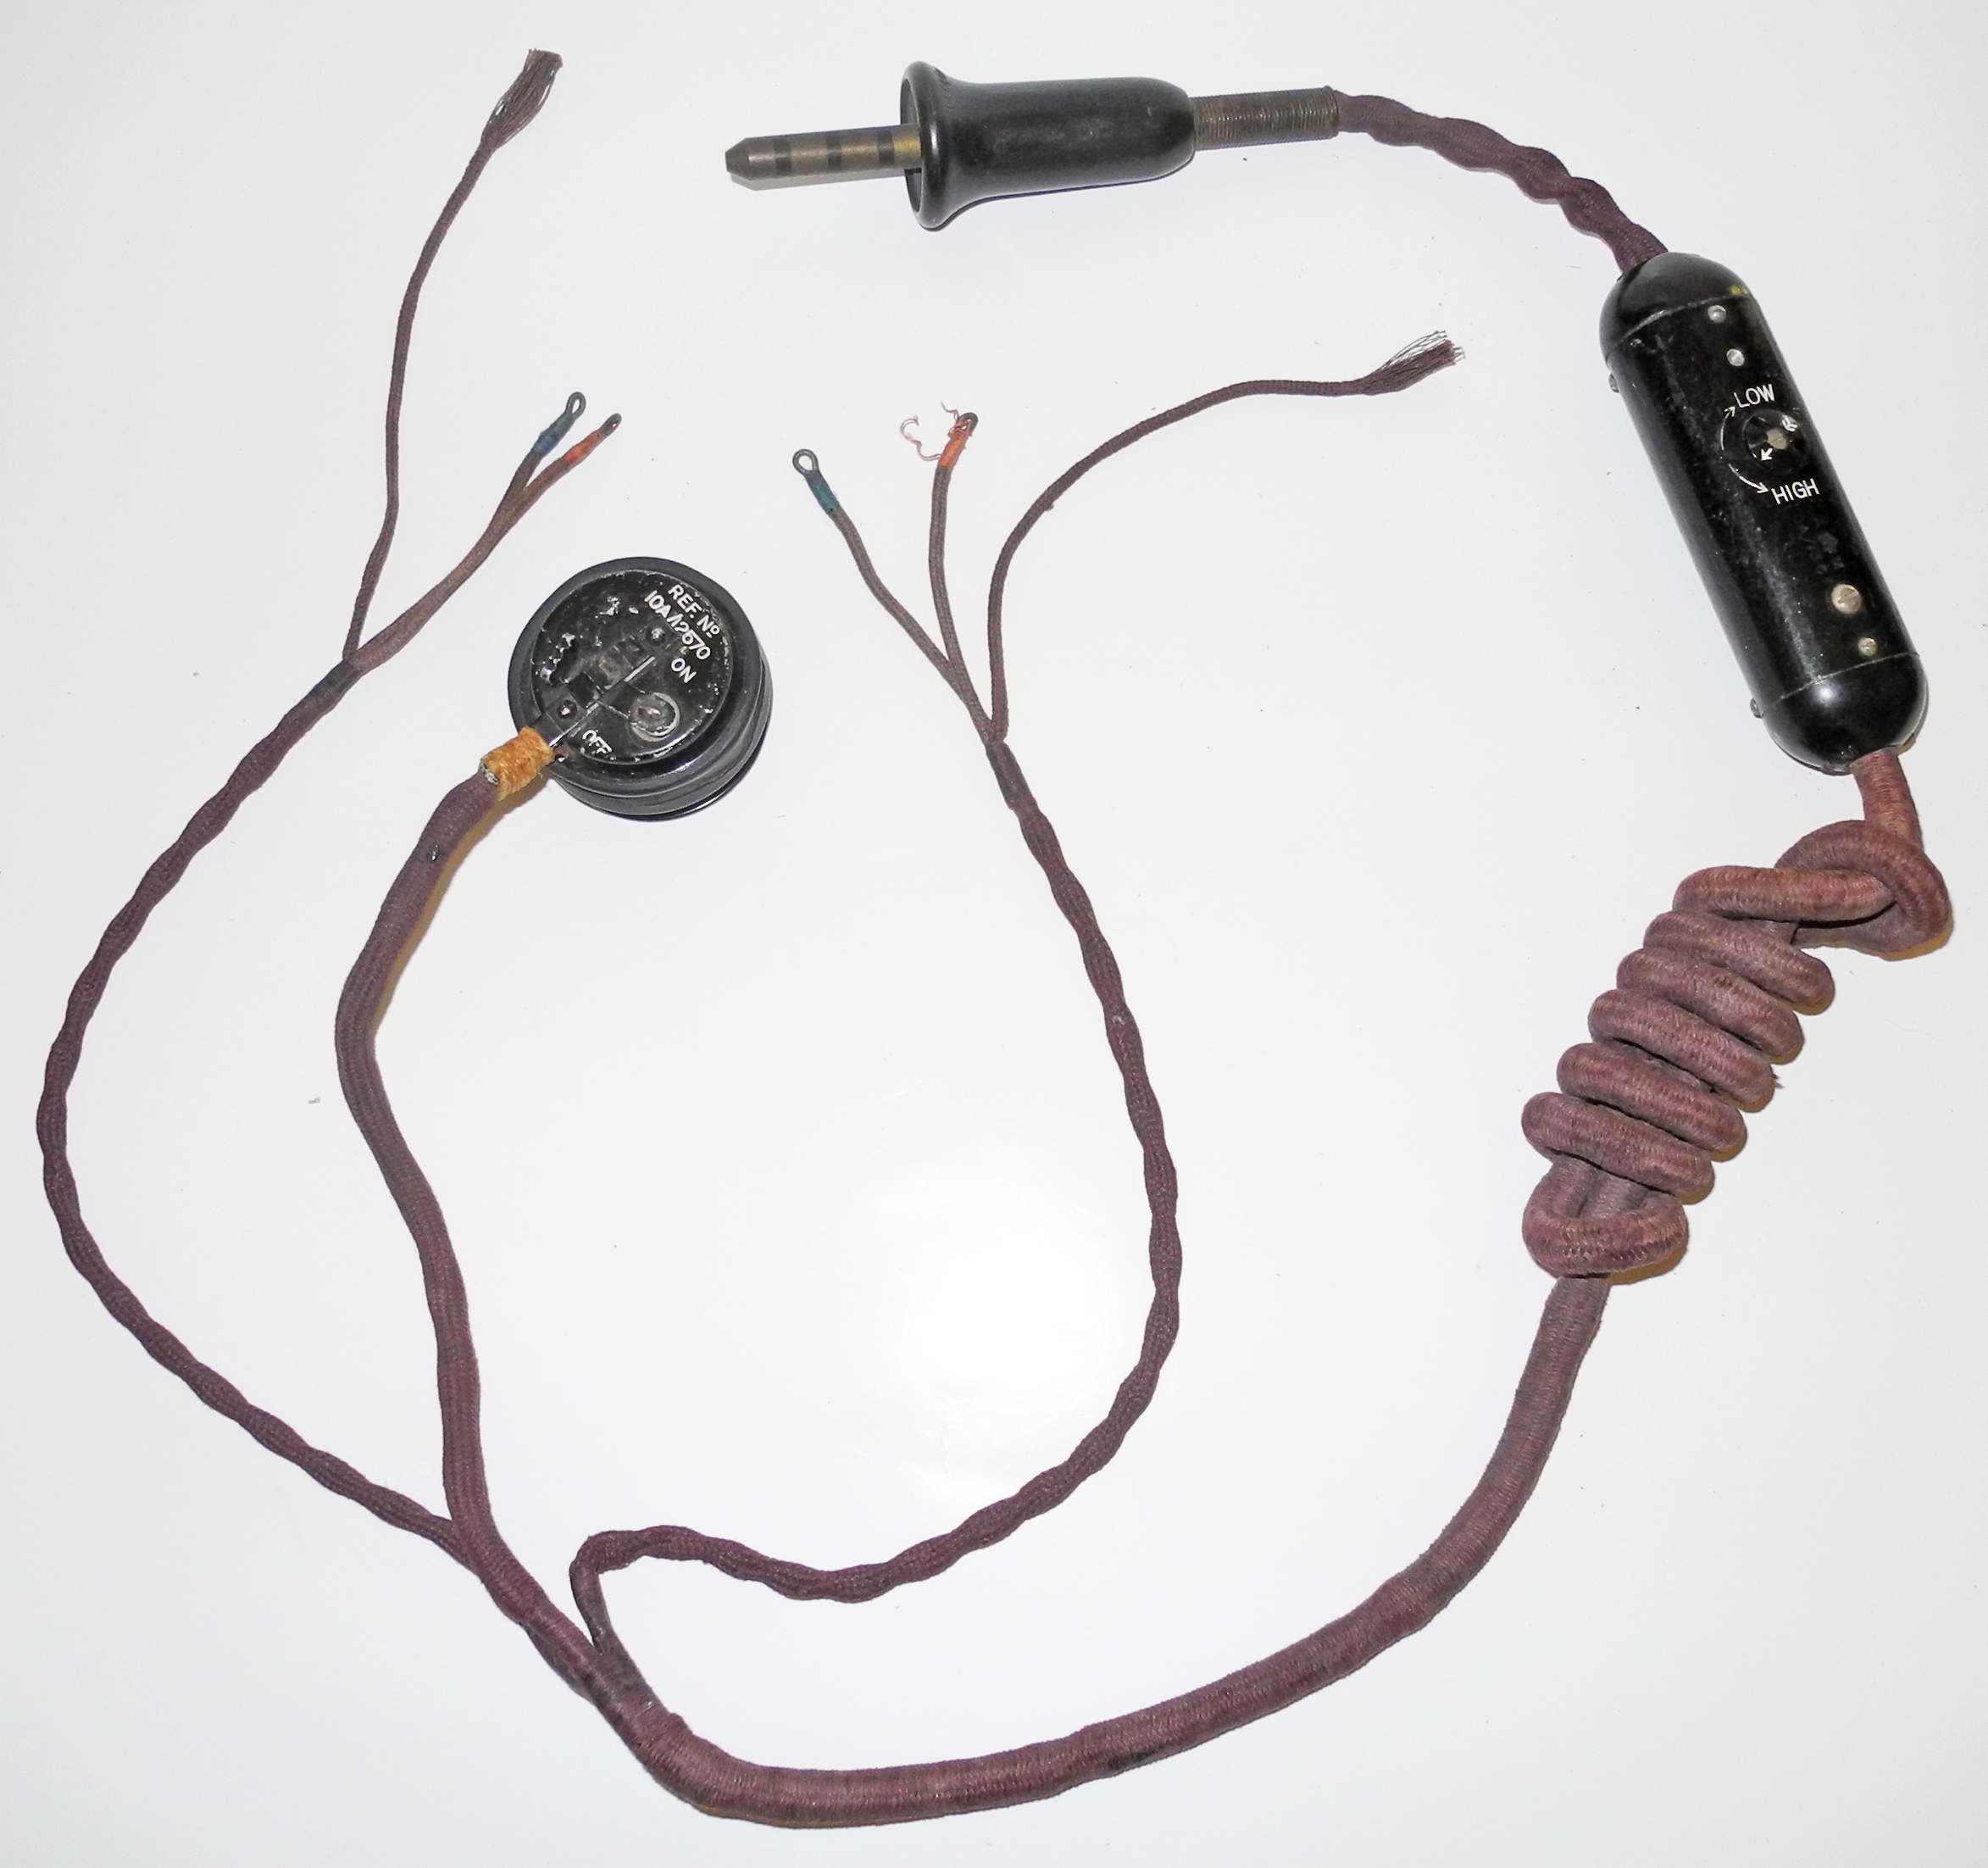 RAF external wiring loom with switch